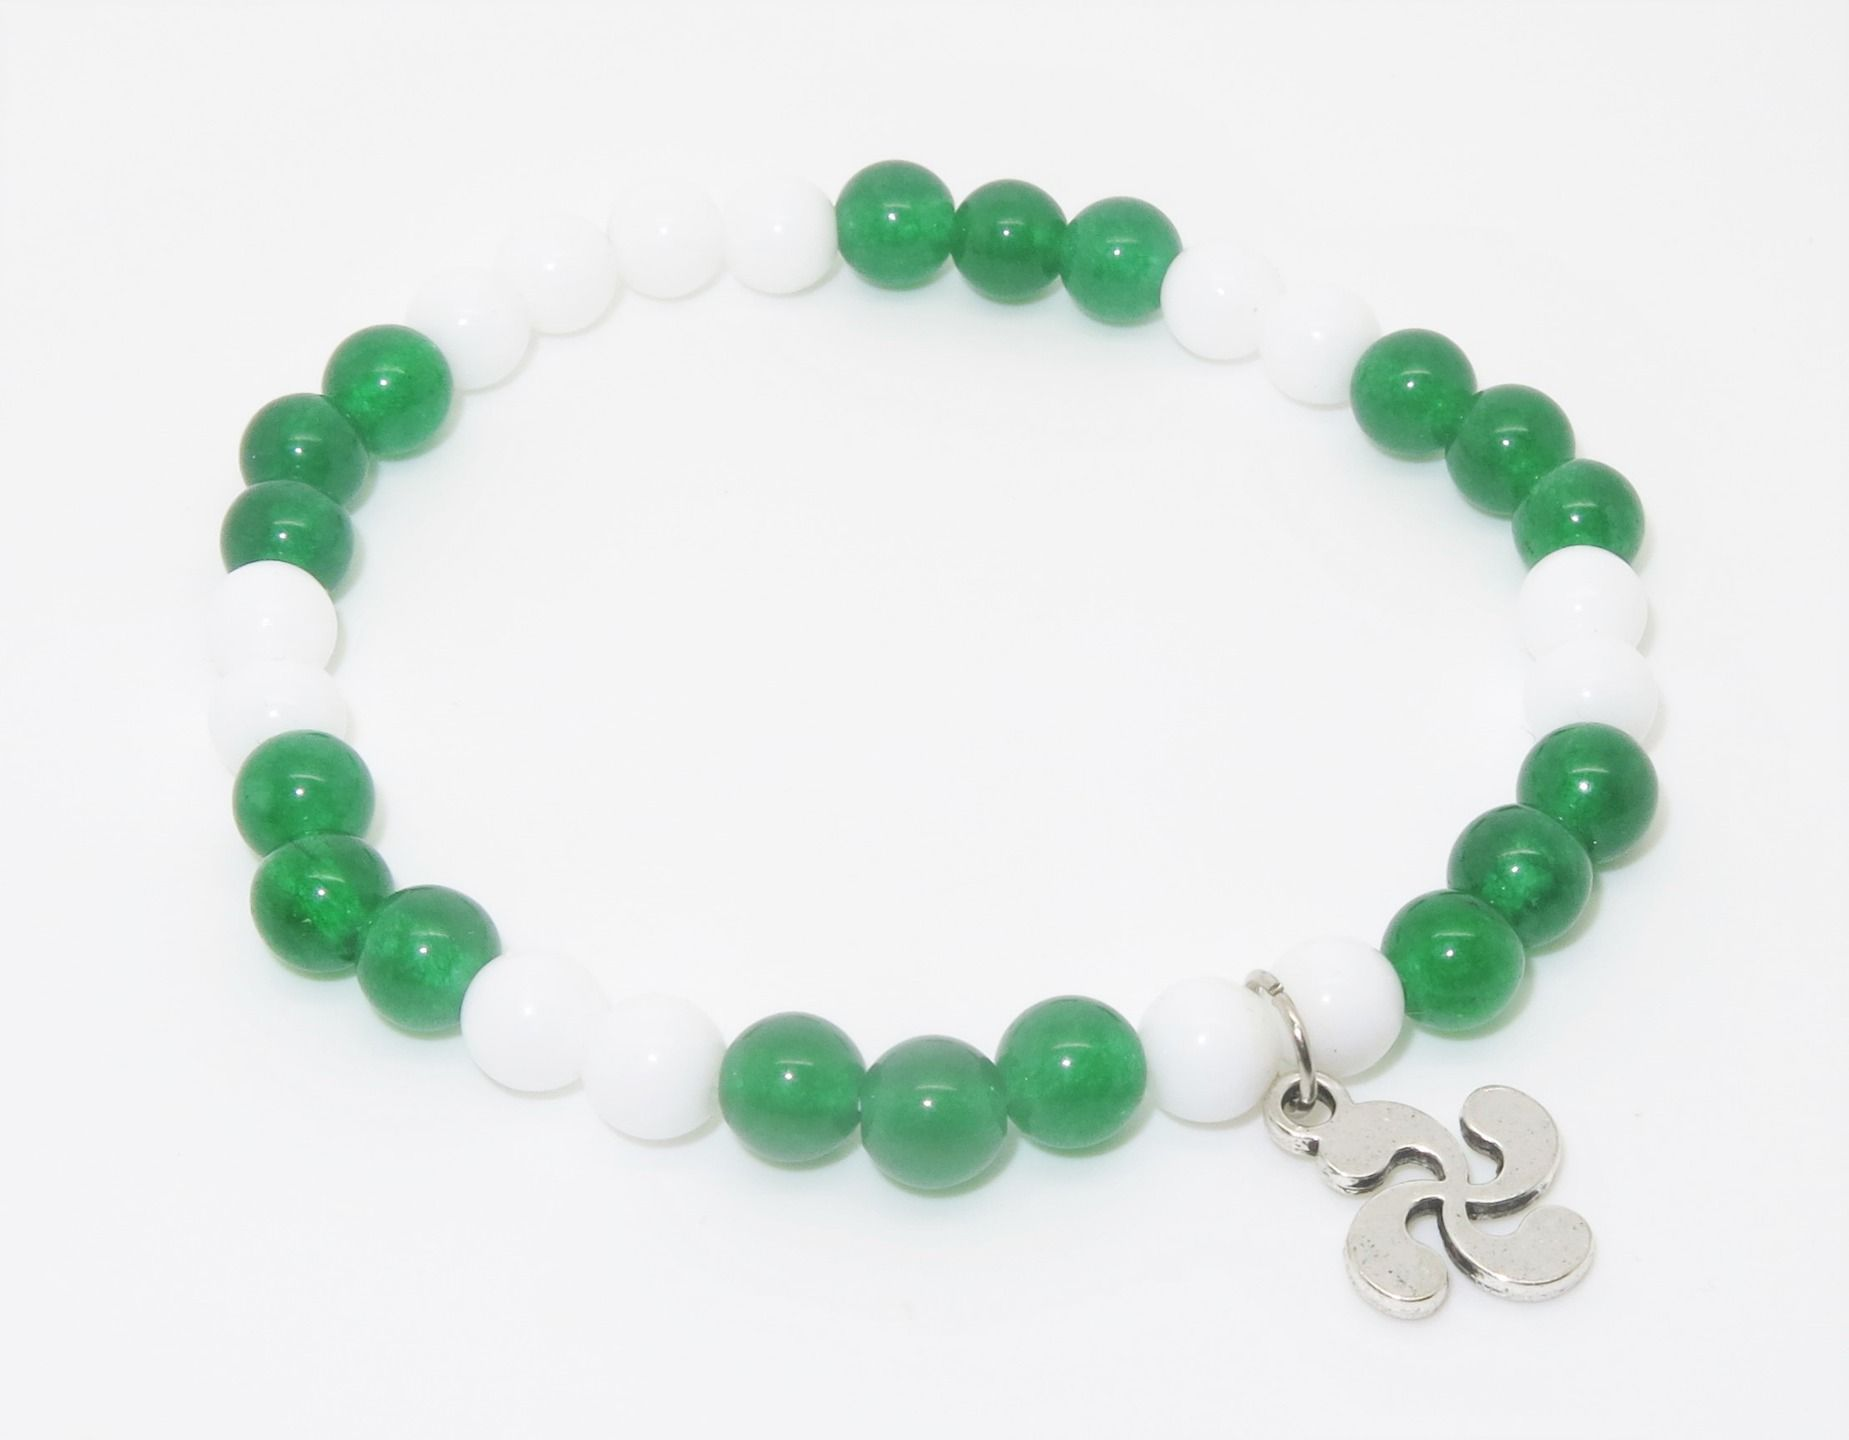 product jade find estate gold jewellery retro vintage bracelet genuine jewelry filled